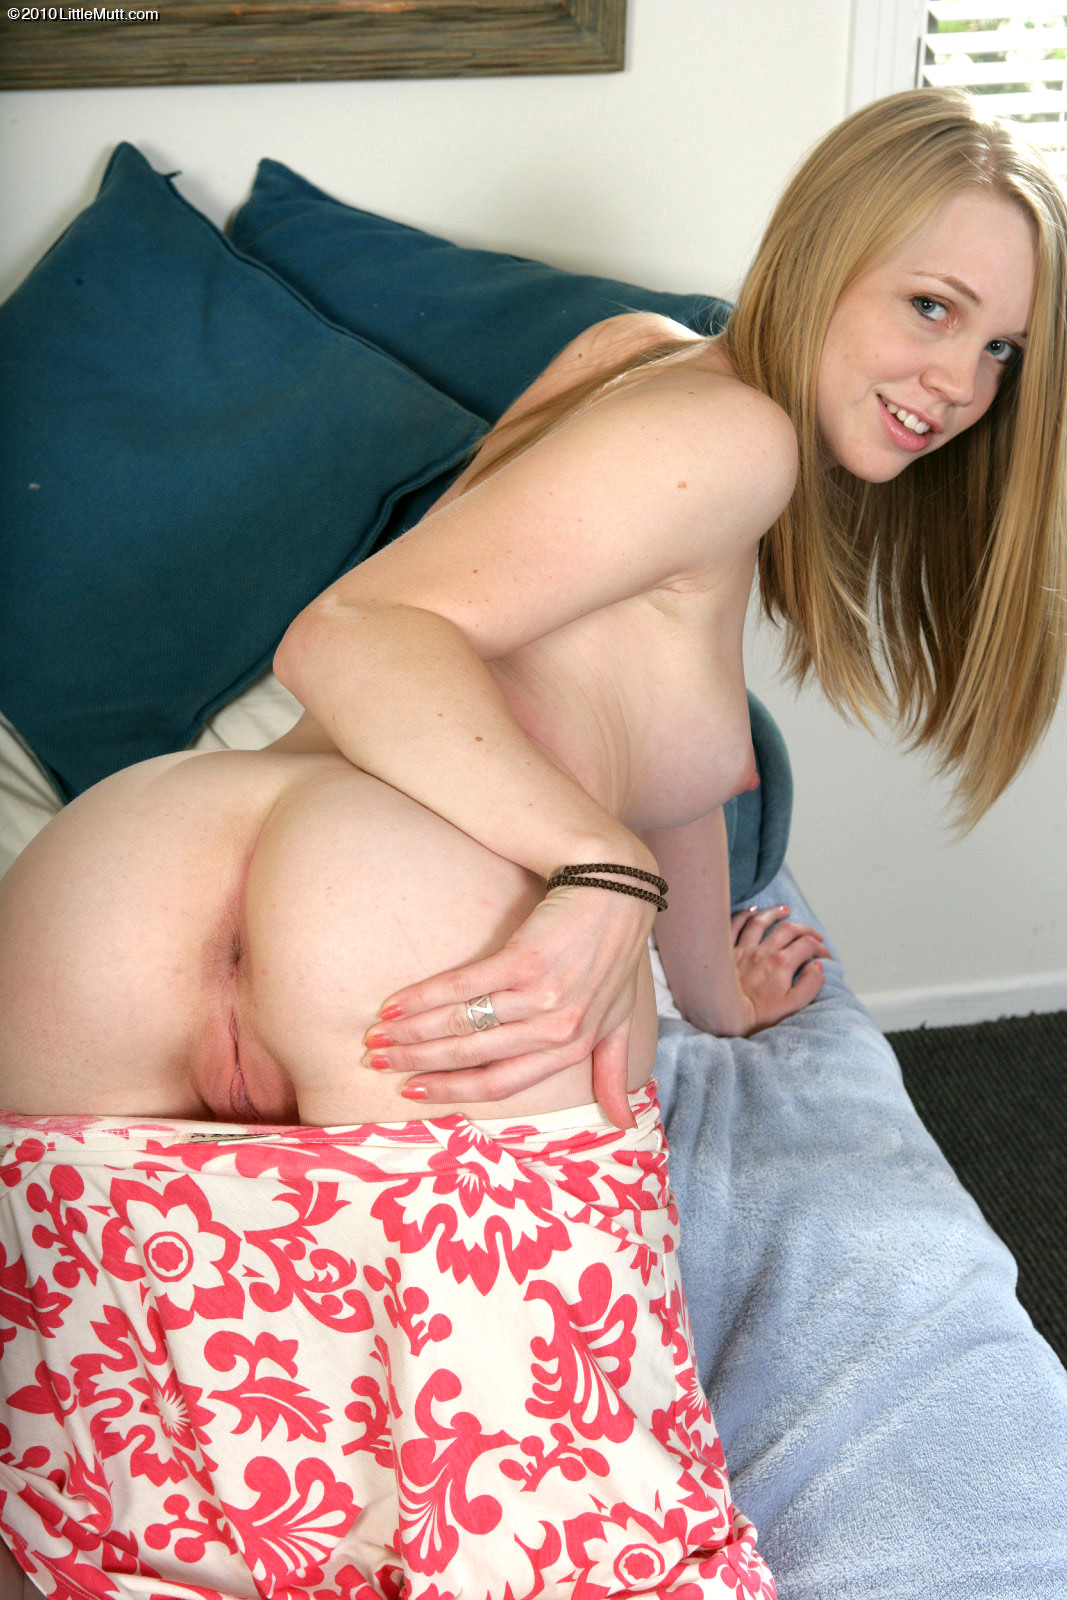 Carley taylor sex pictures gallery #1